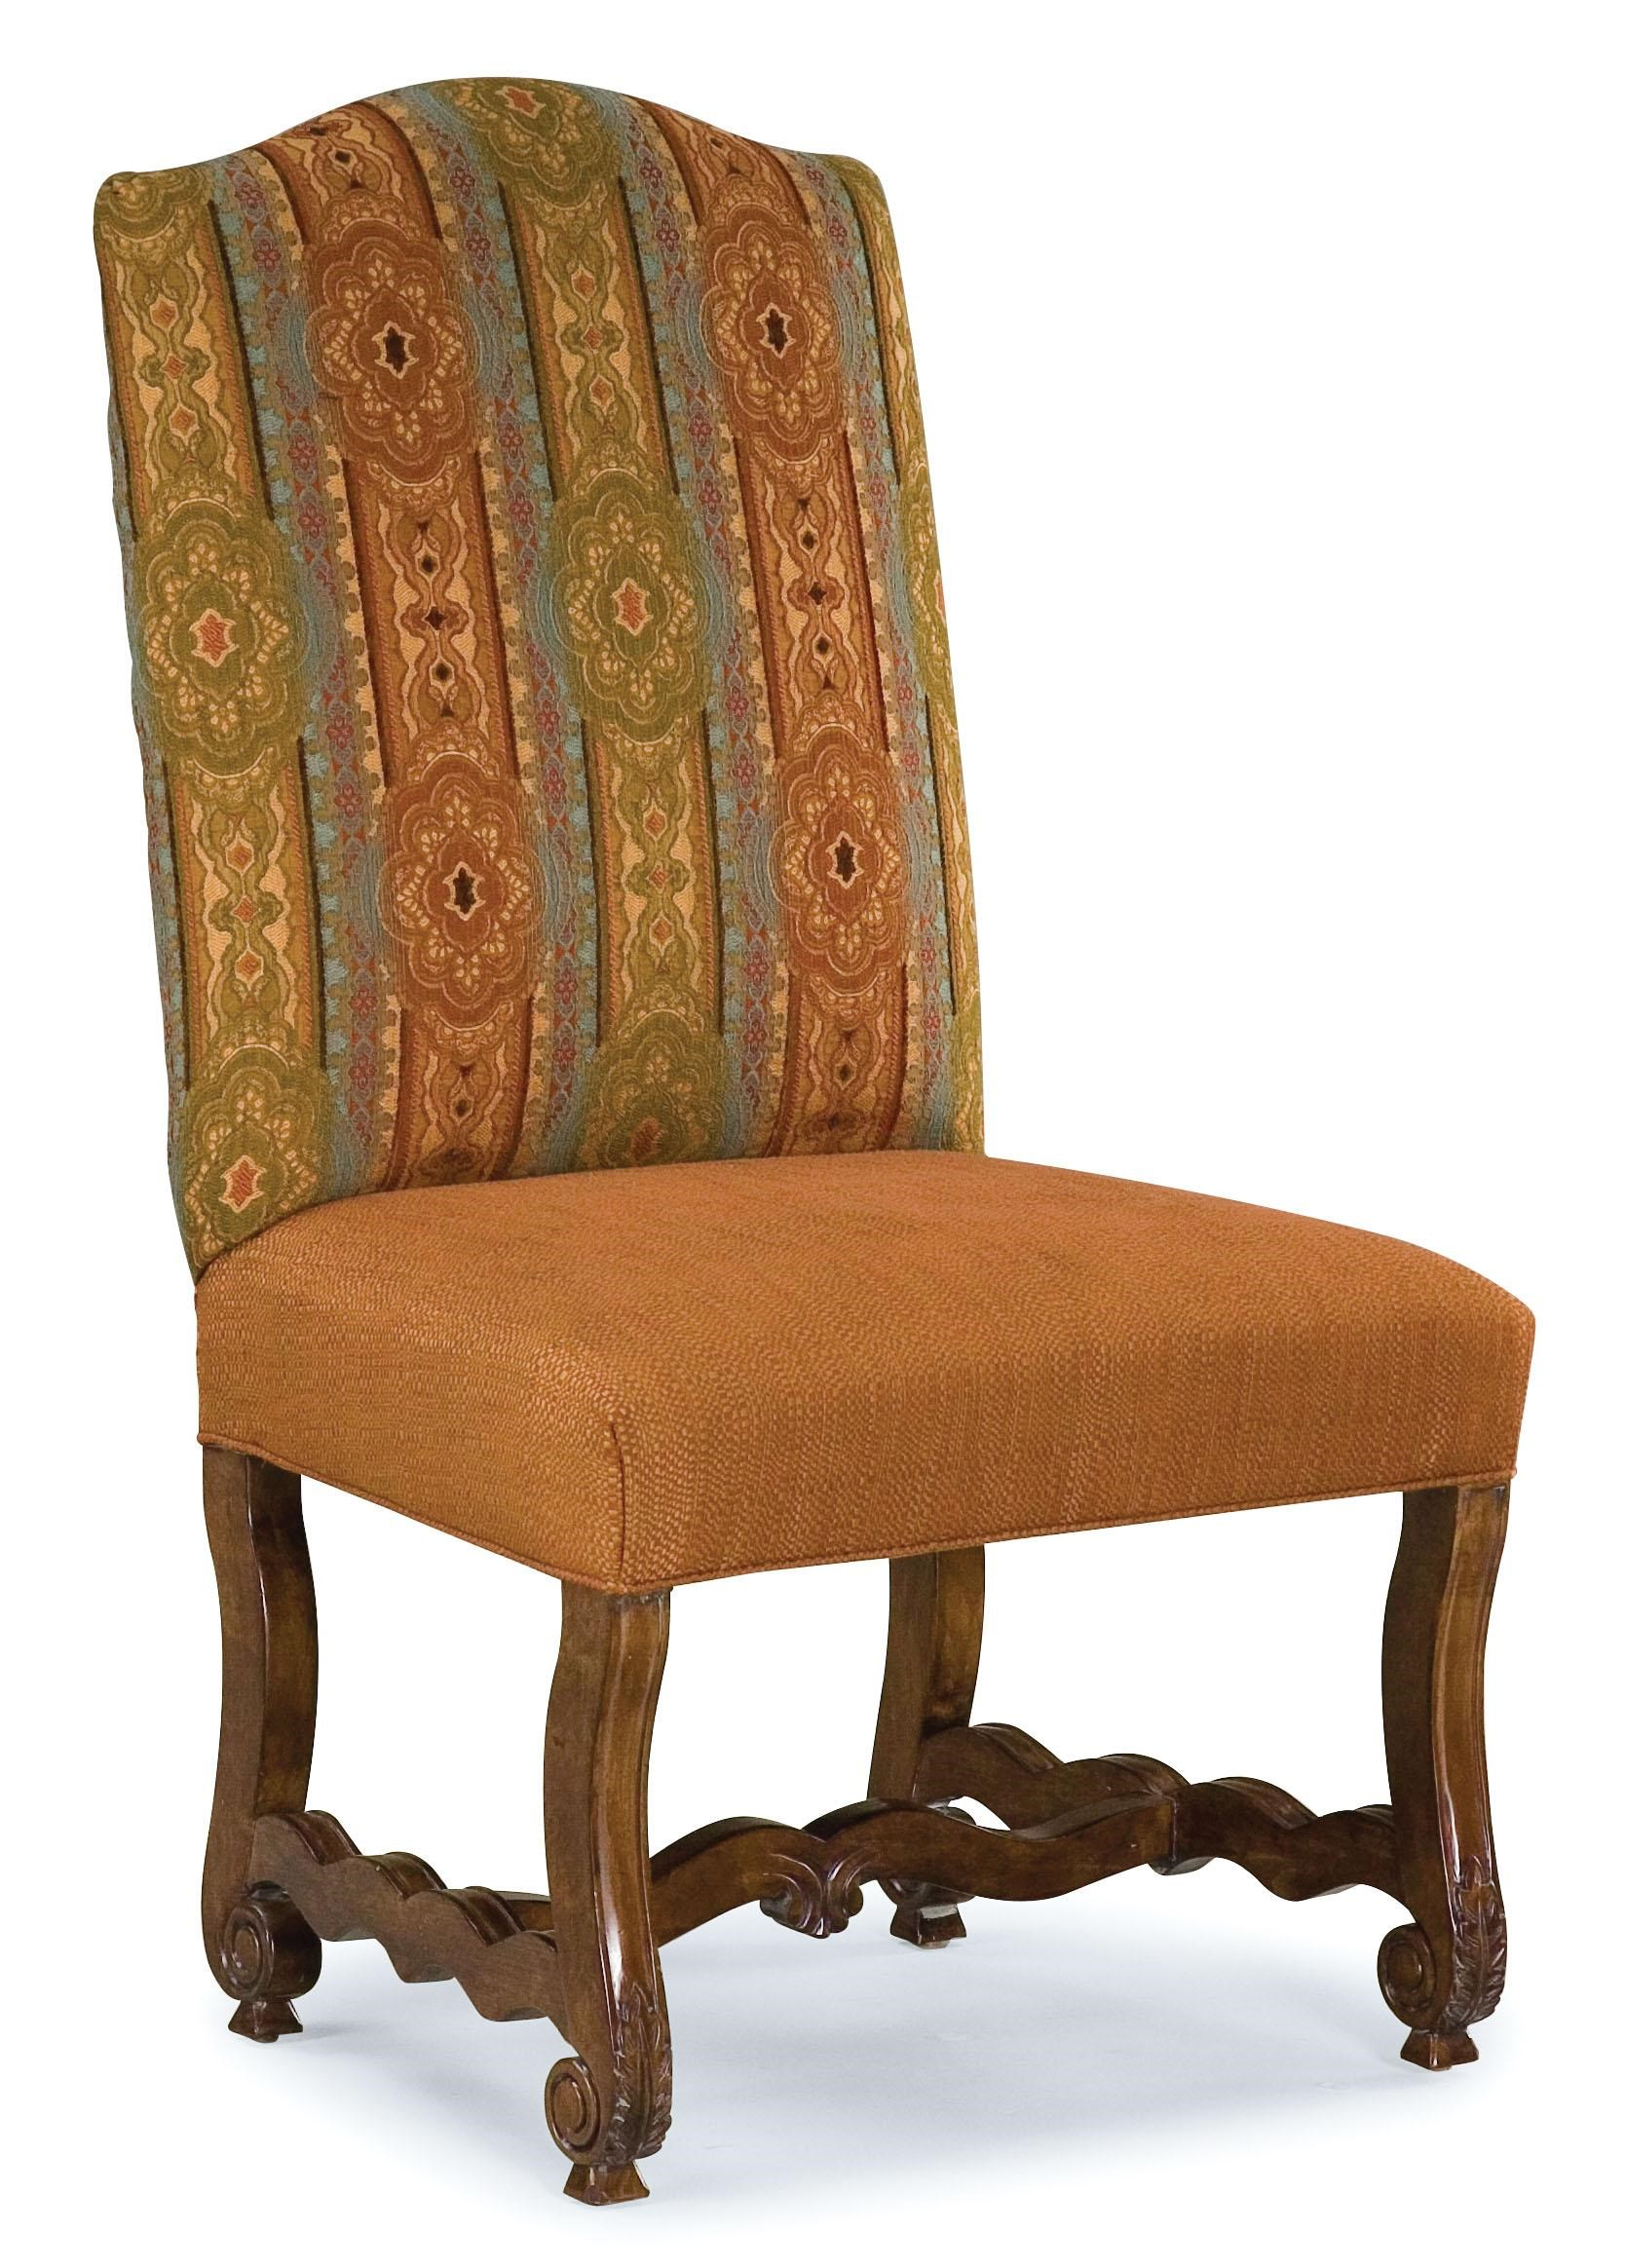 Fairfield Chairs Armless Accent Chair with Wooden Carvings